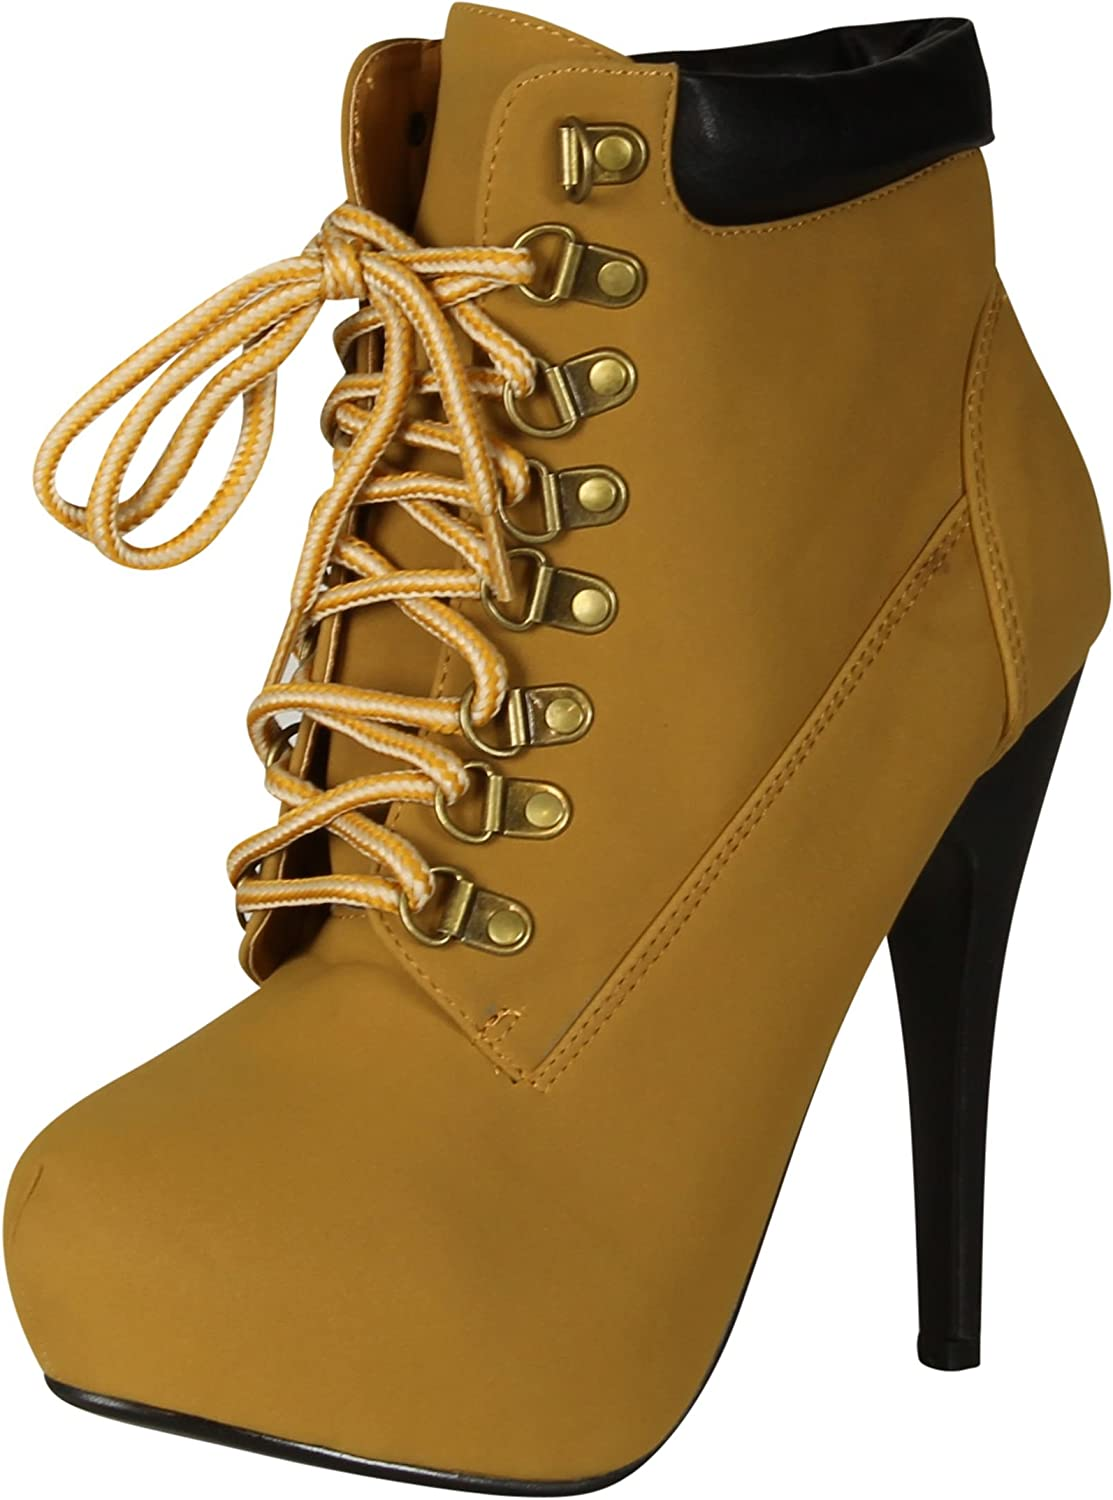 JJF Forever Link Womens Compose-01 Tyrant Military Lace up Platform Ankle Bootie,Camel,10